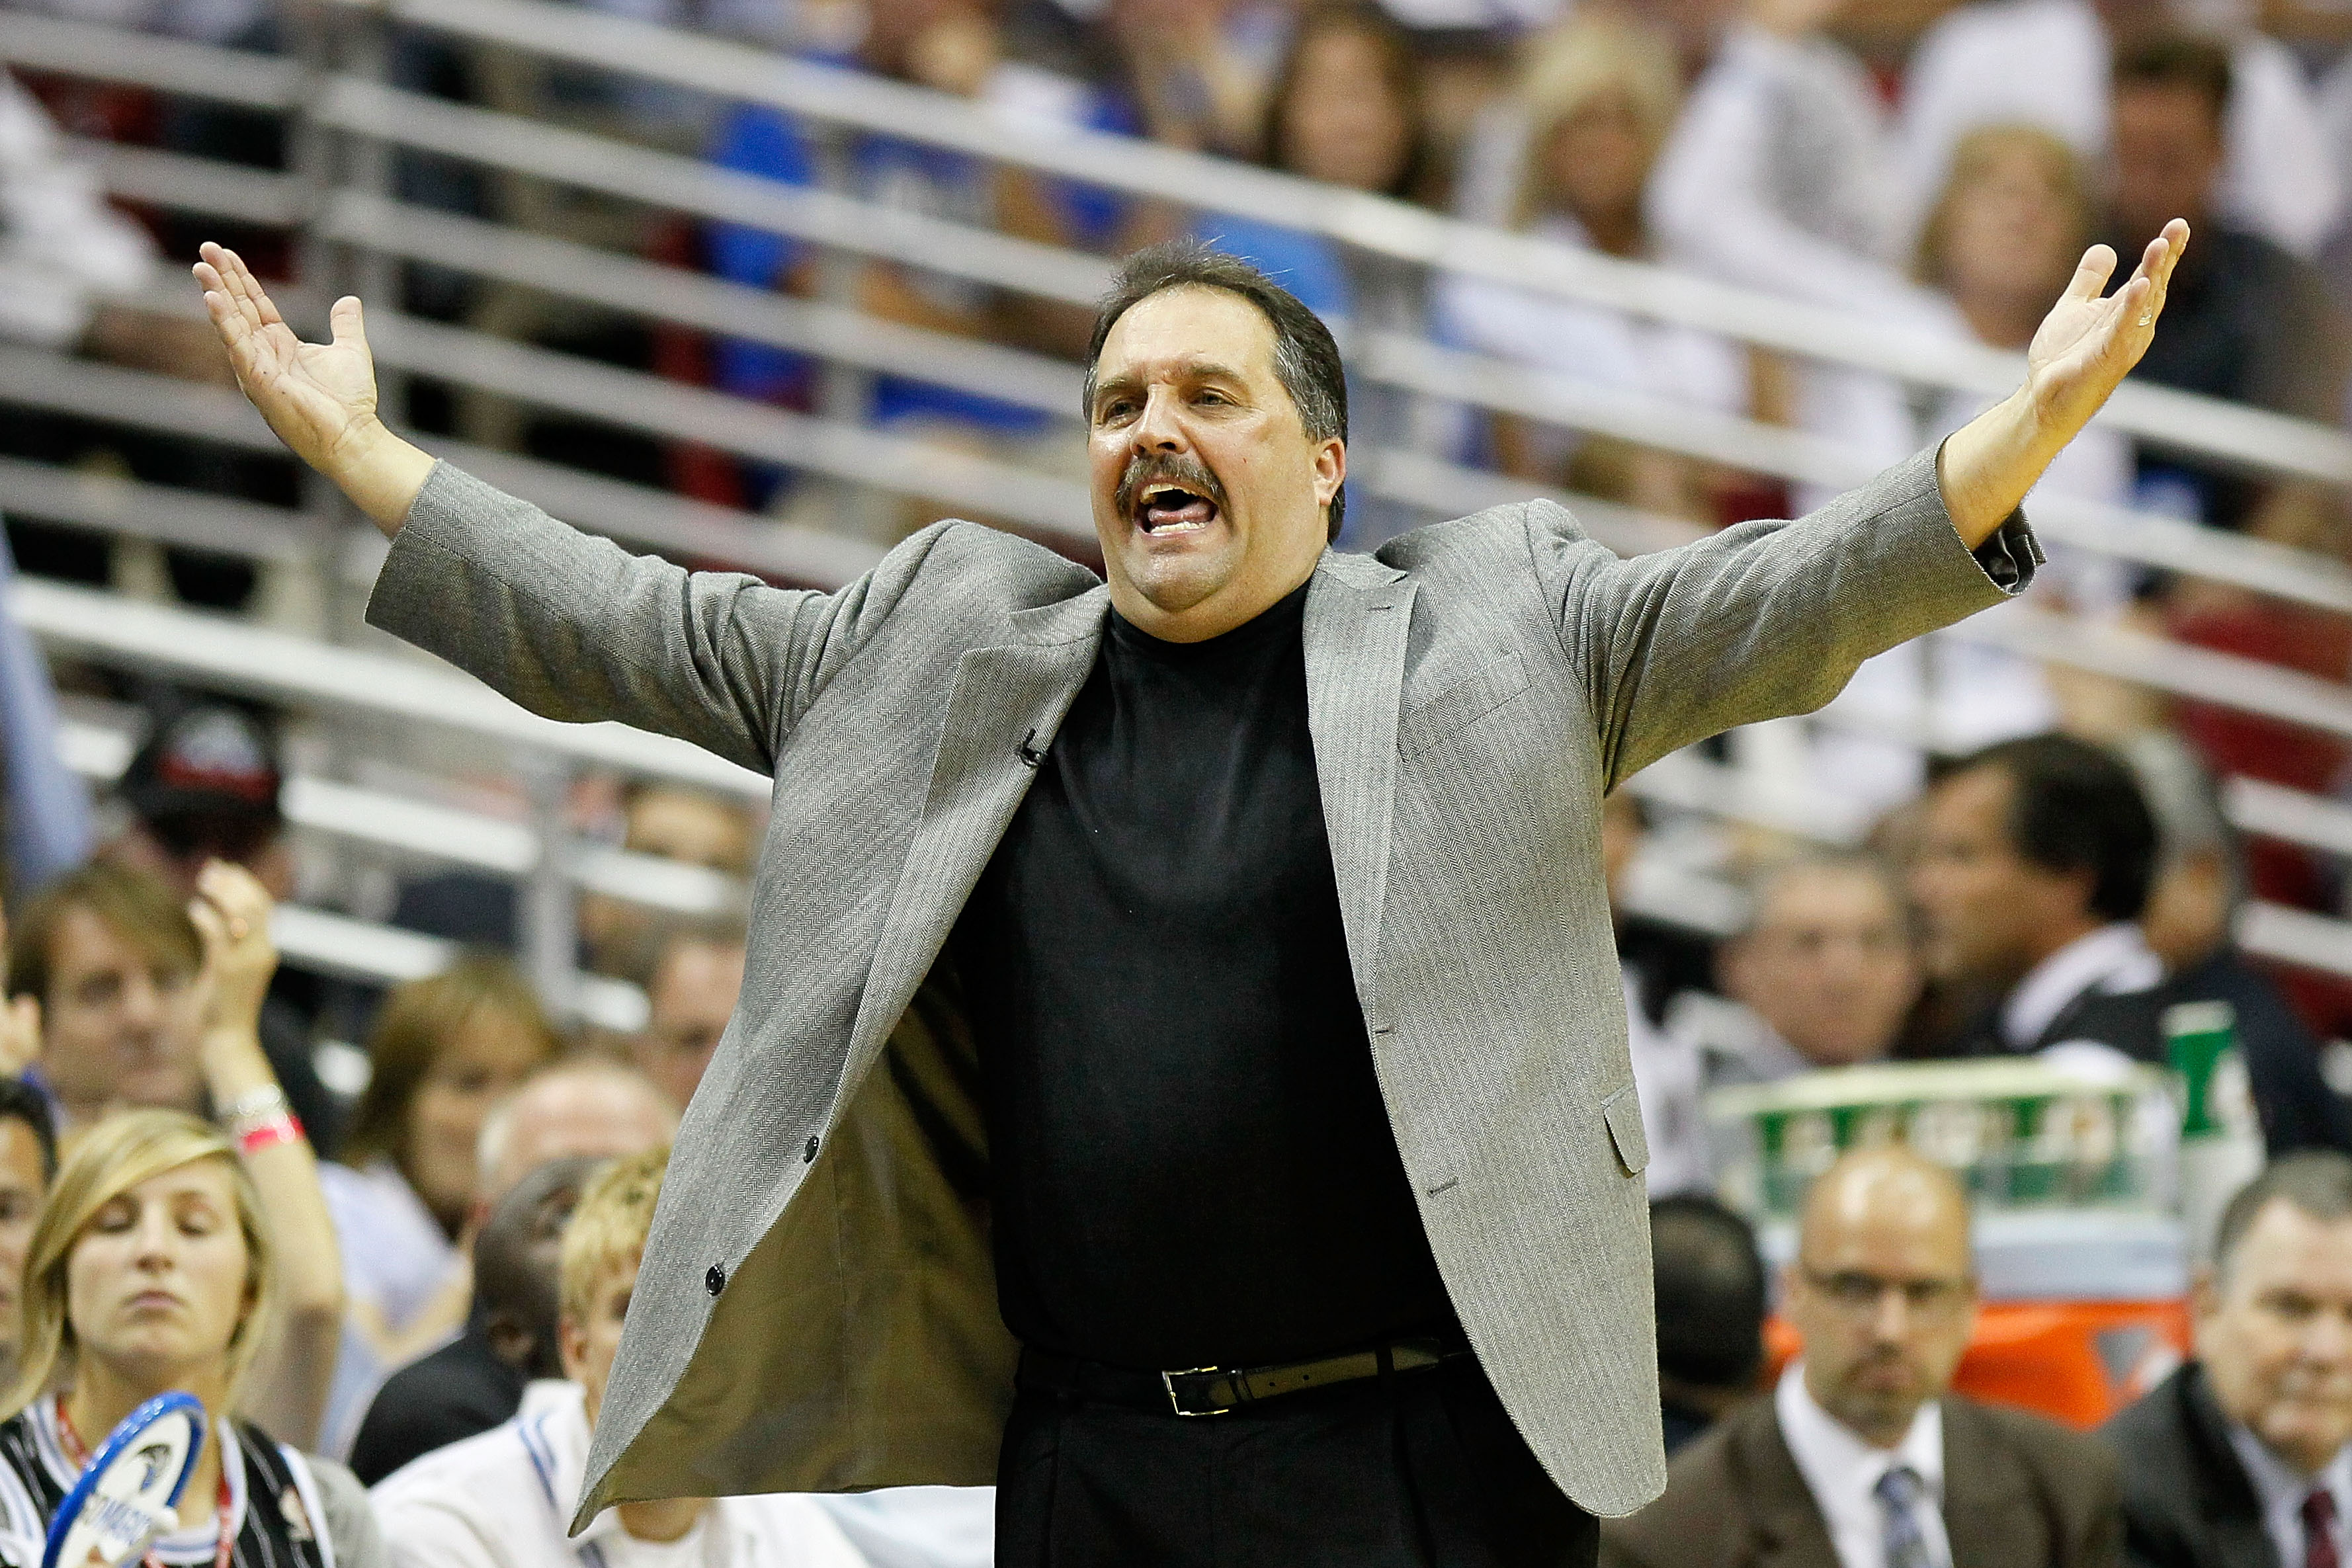 ORLANDO, FL - MAY 26:  Head coach Stan Van Gundy of the Orlando Magic reacts in the first quarter against the Boston Celtics in Game Five of the Eastern Conference Finals during the 2010 NBA Playoffs at Amway Arena on May 26, 2010 in Orlando, Florida.  NO